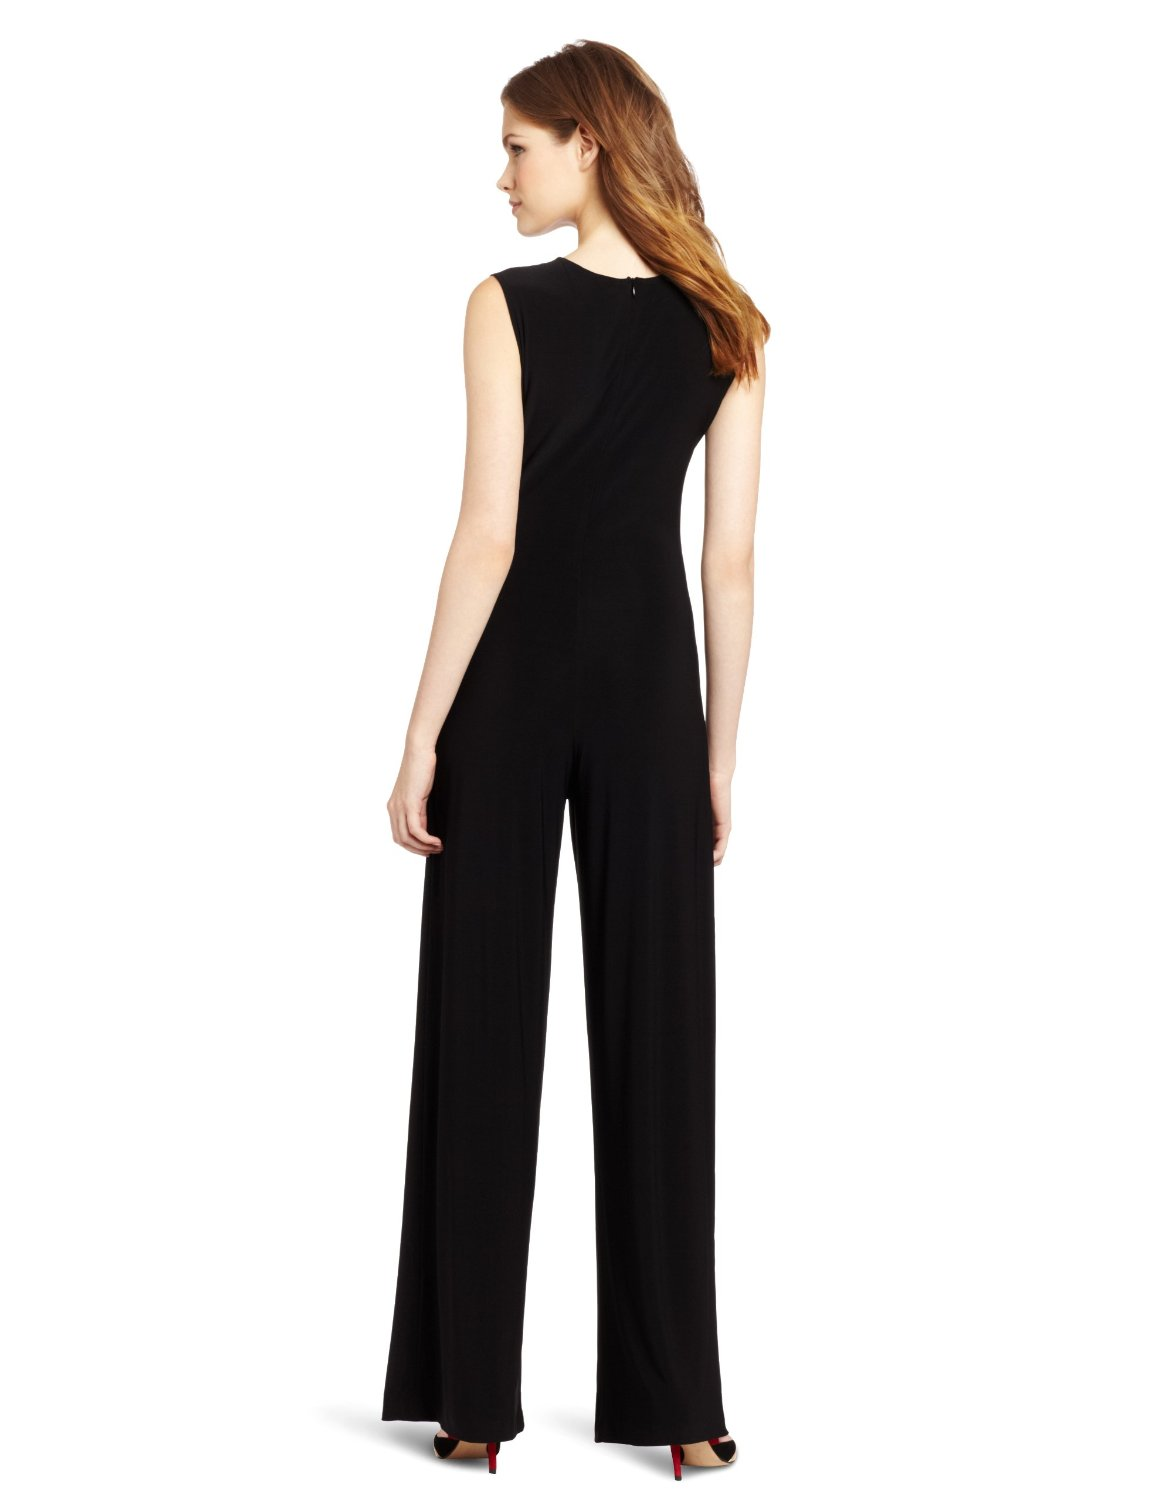 Jumpsuits for women 2013